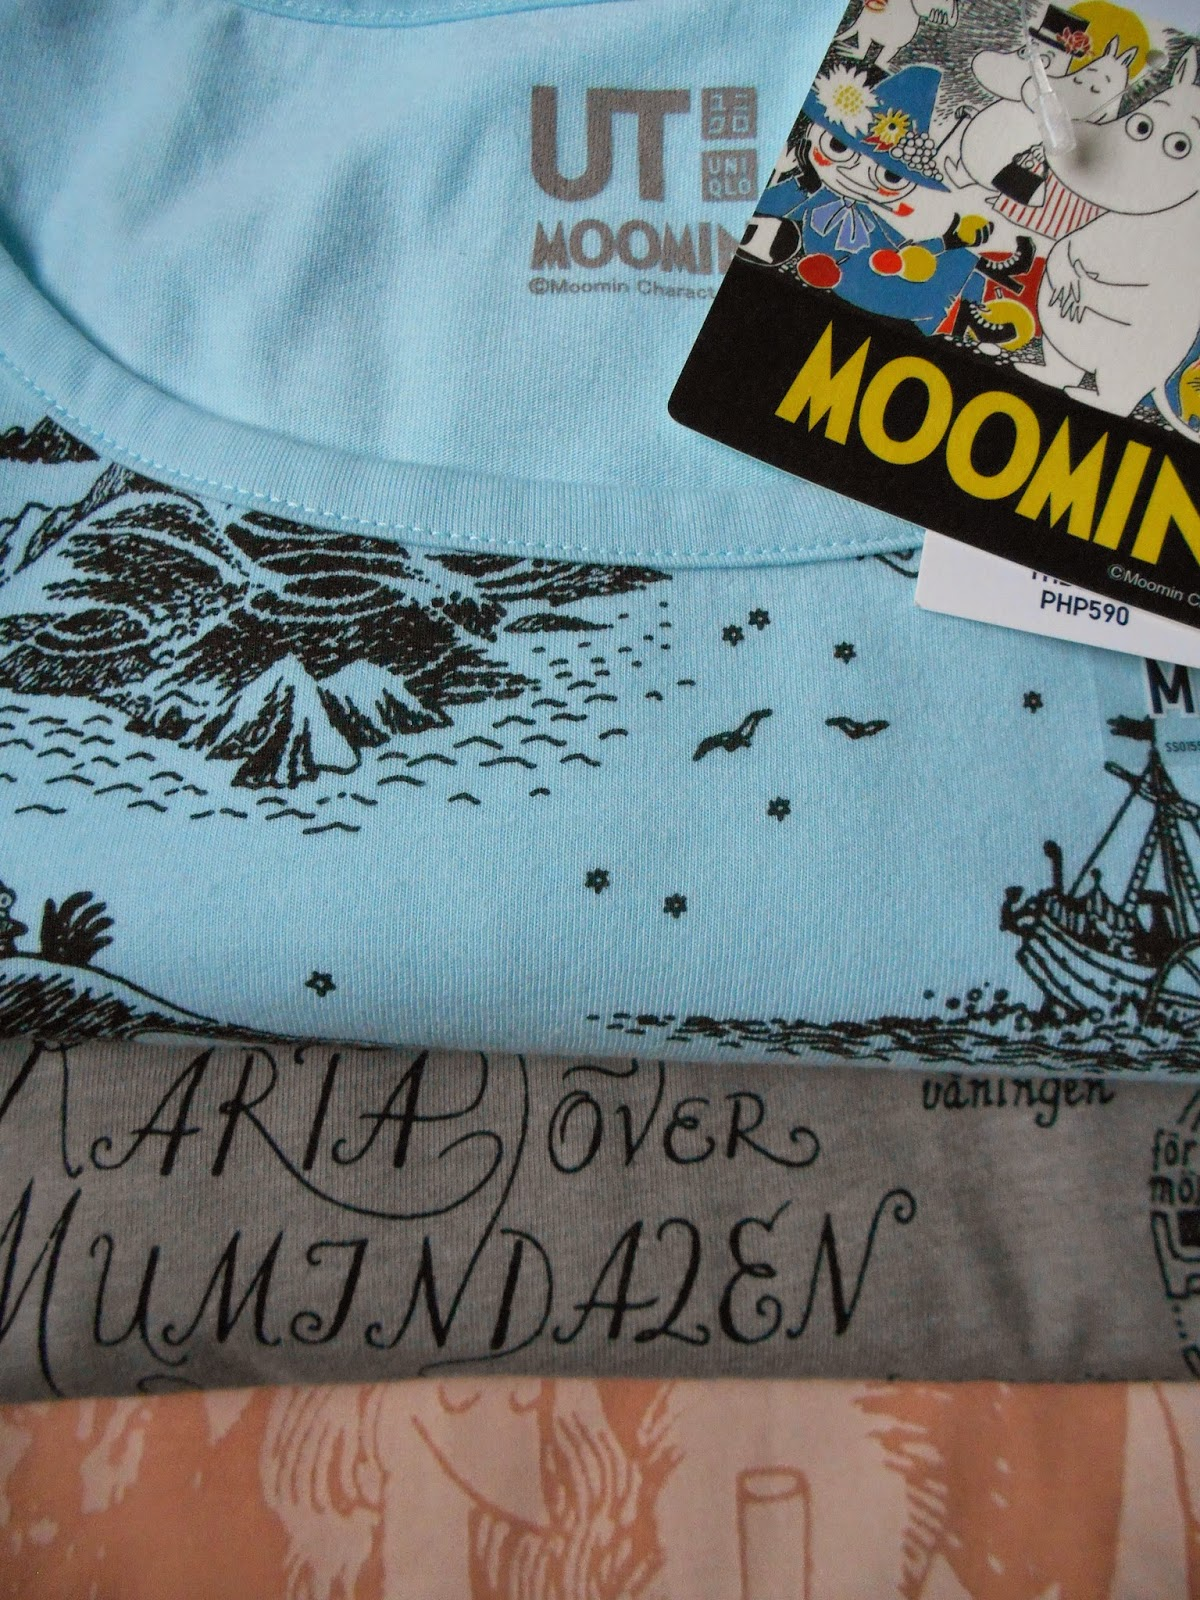 UNIQLO UT Moomin Women's Collection